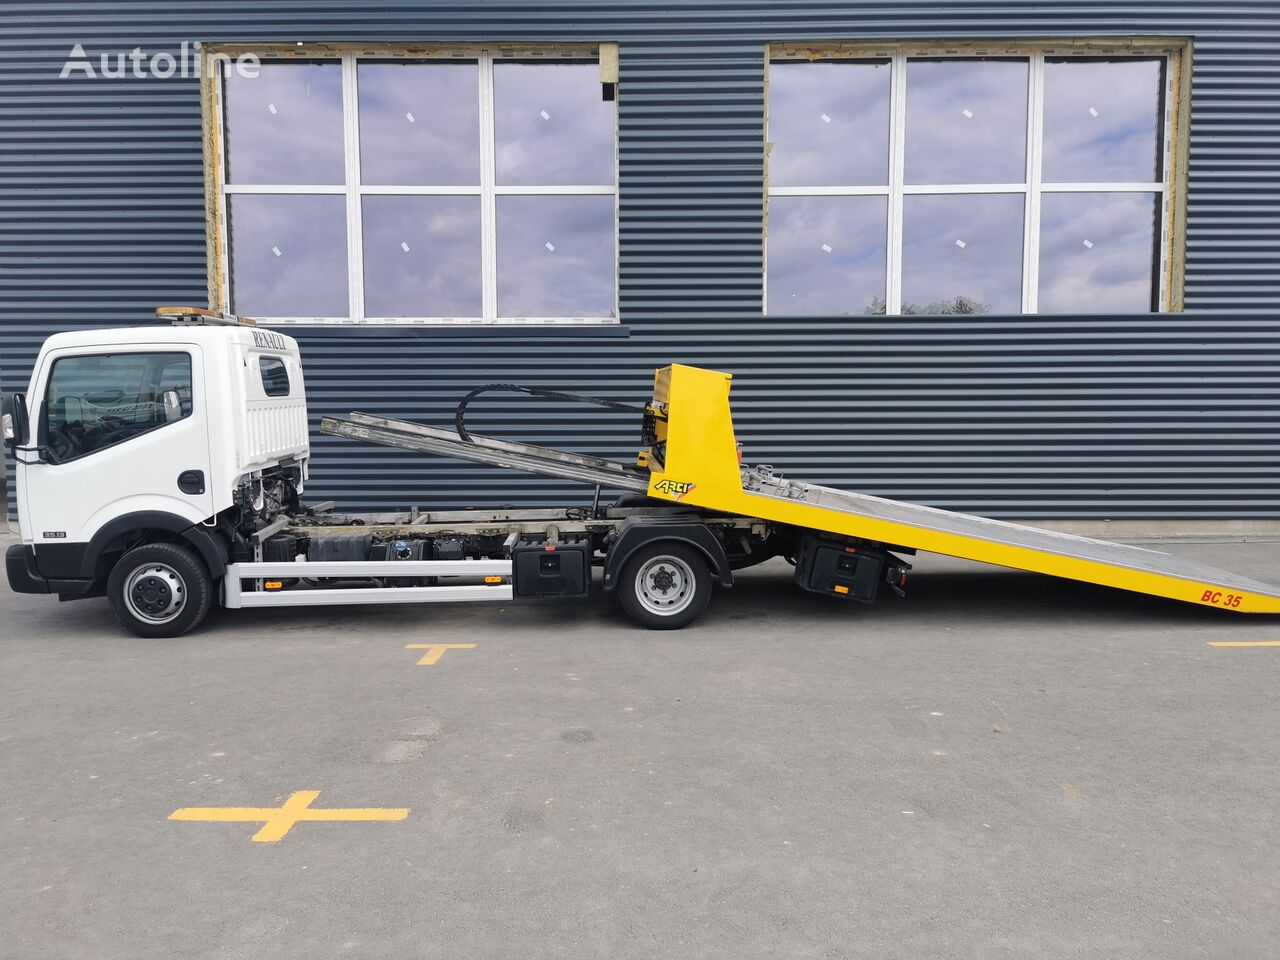 NISSAN NT400 tow truck